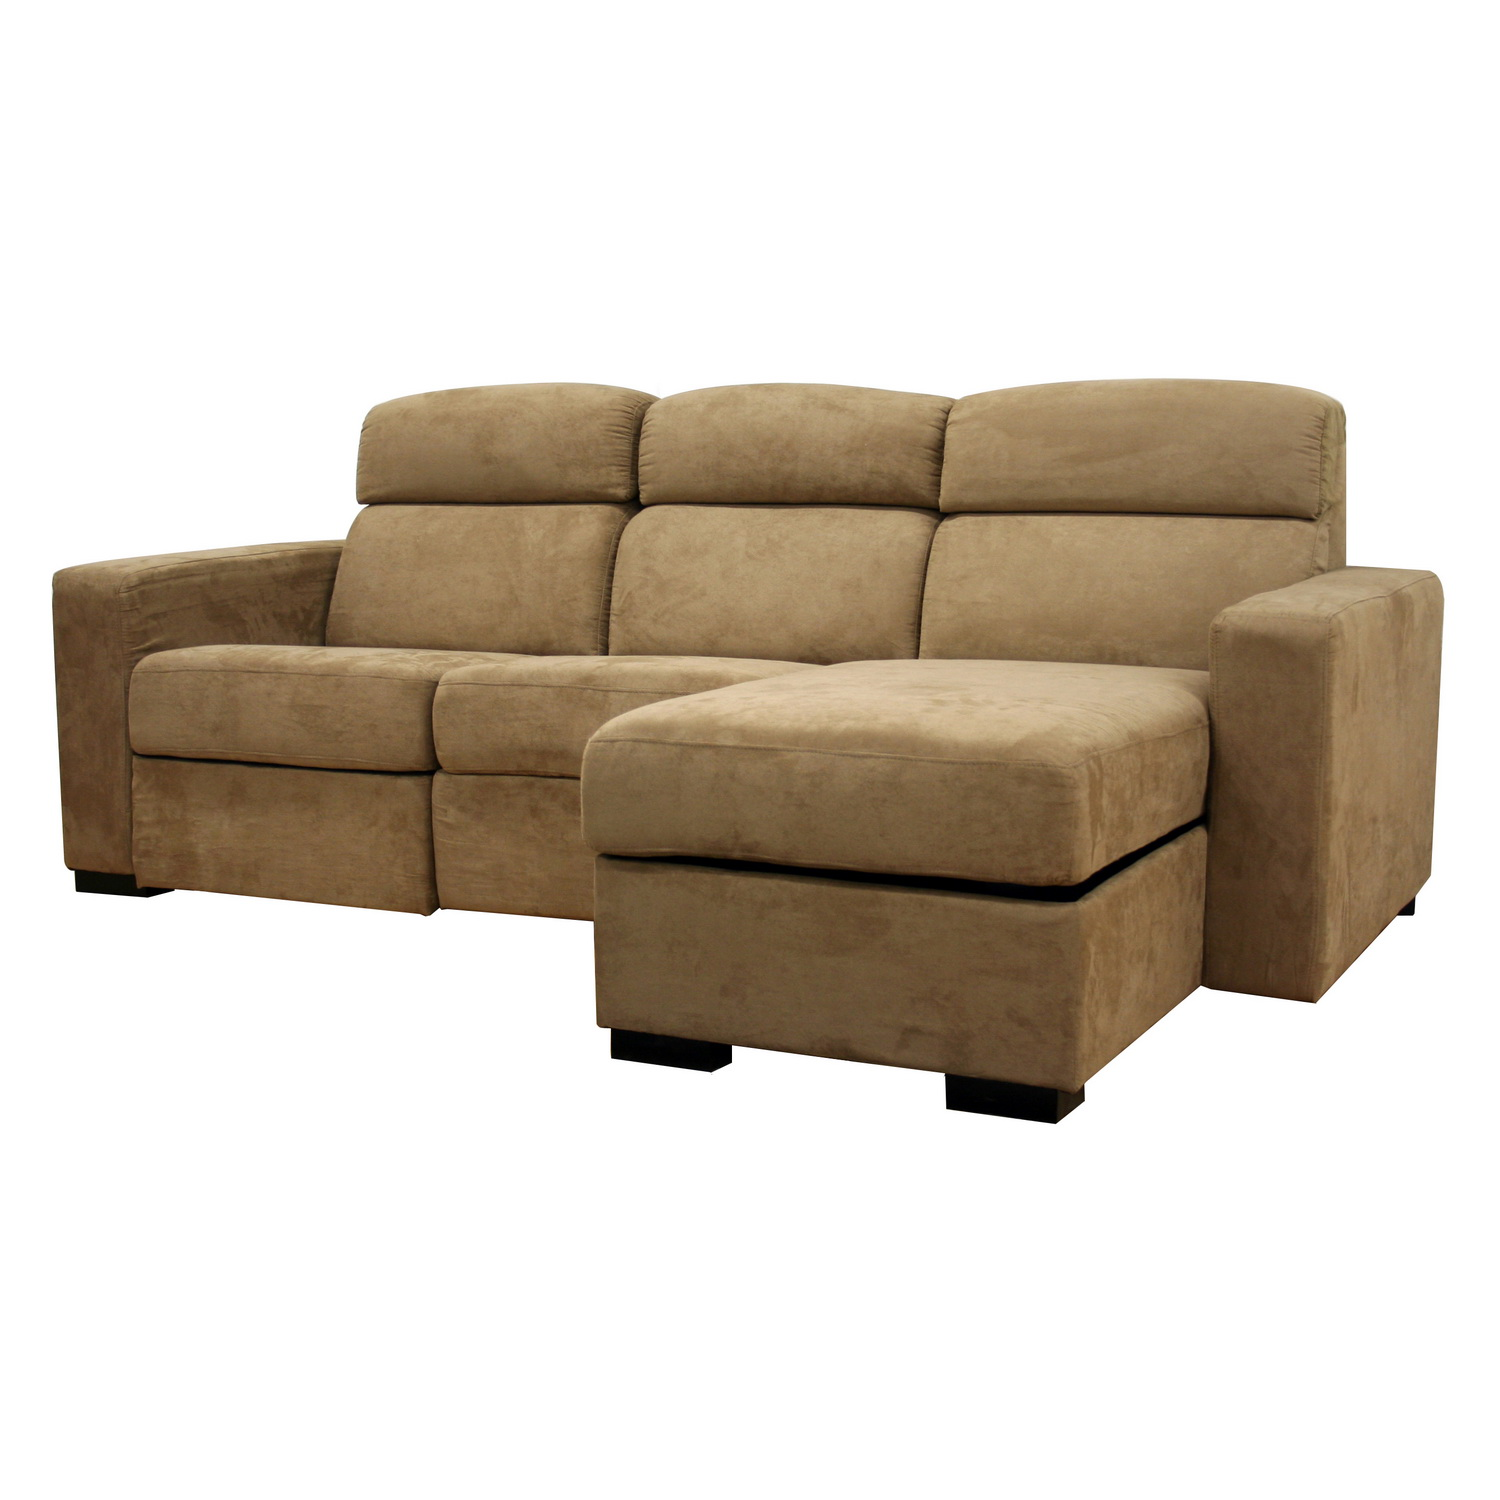 Sectional sofa with chaise recliner and sleeper Sleeper sofa sectional